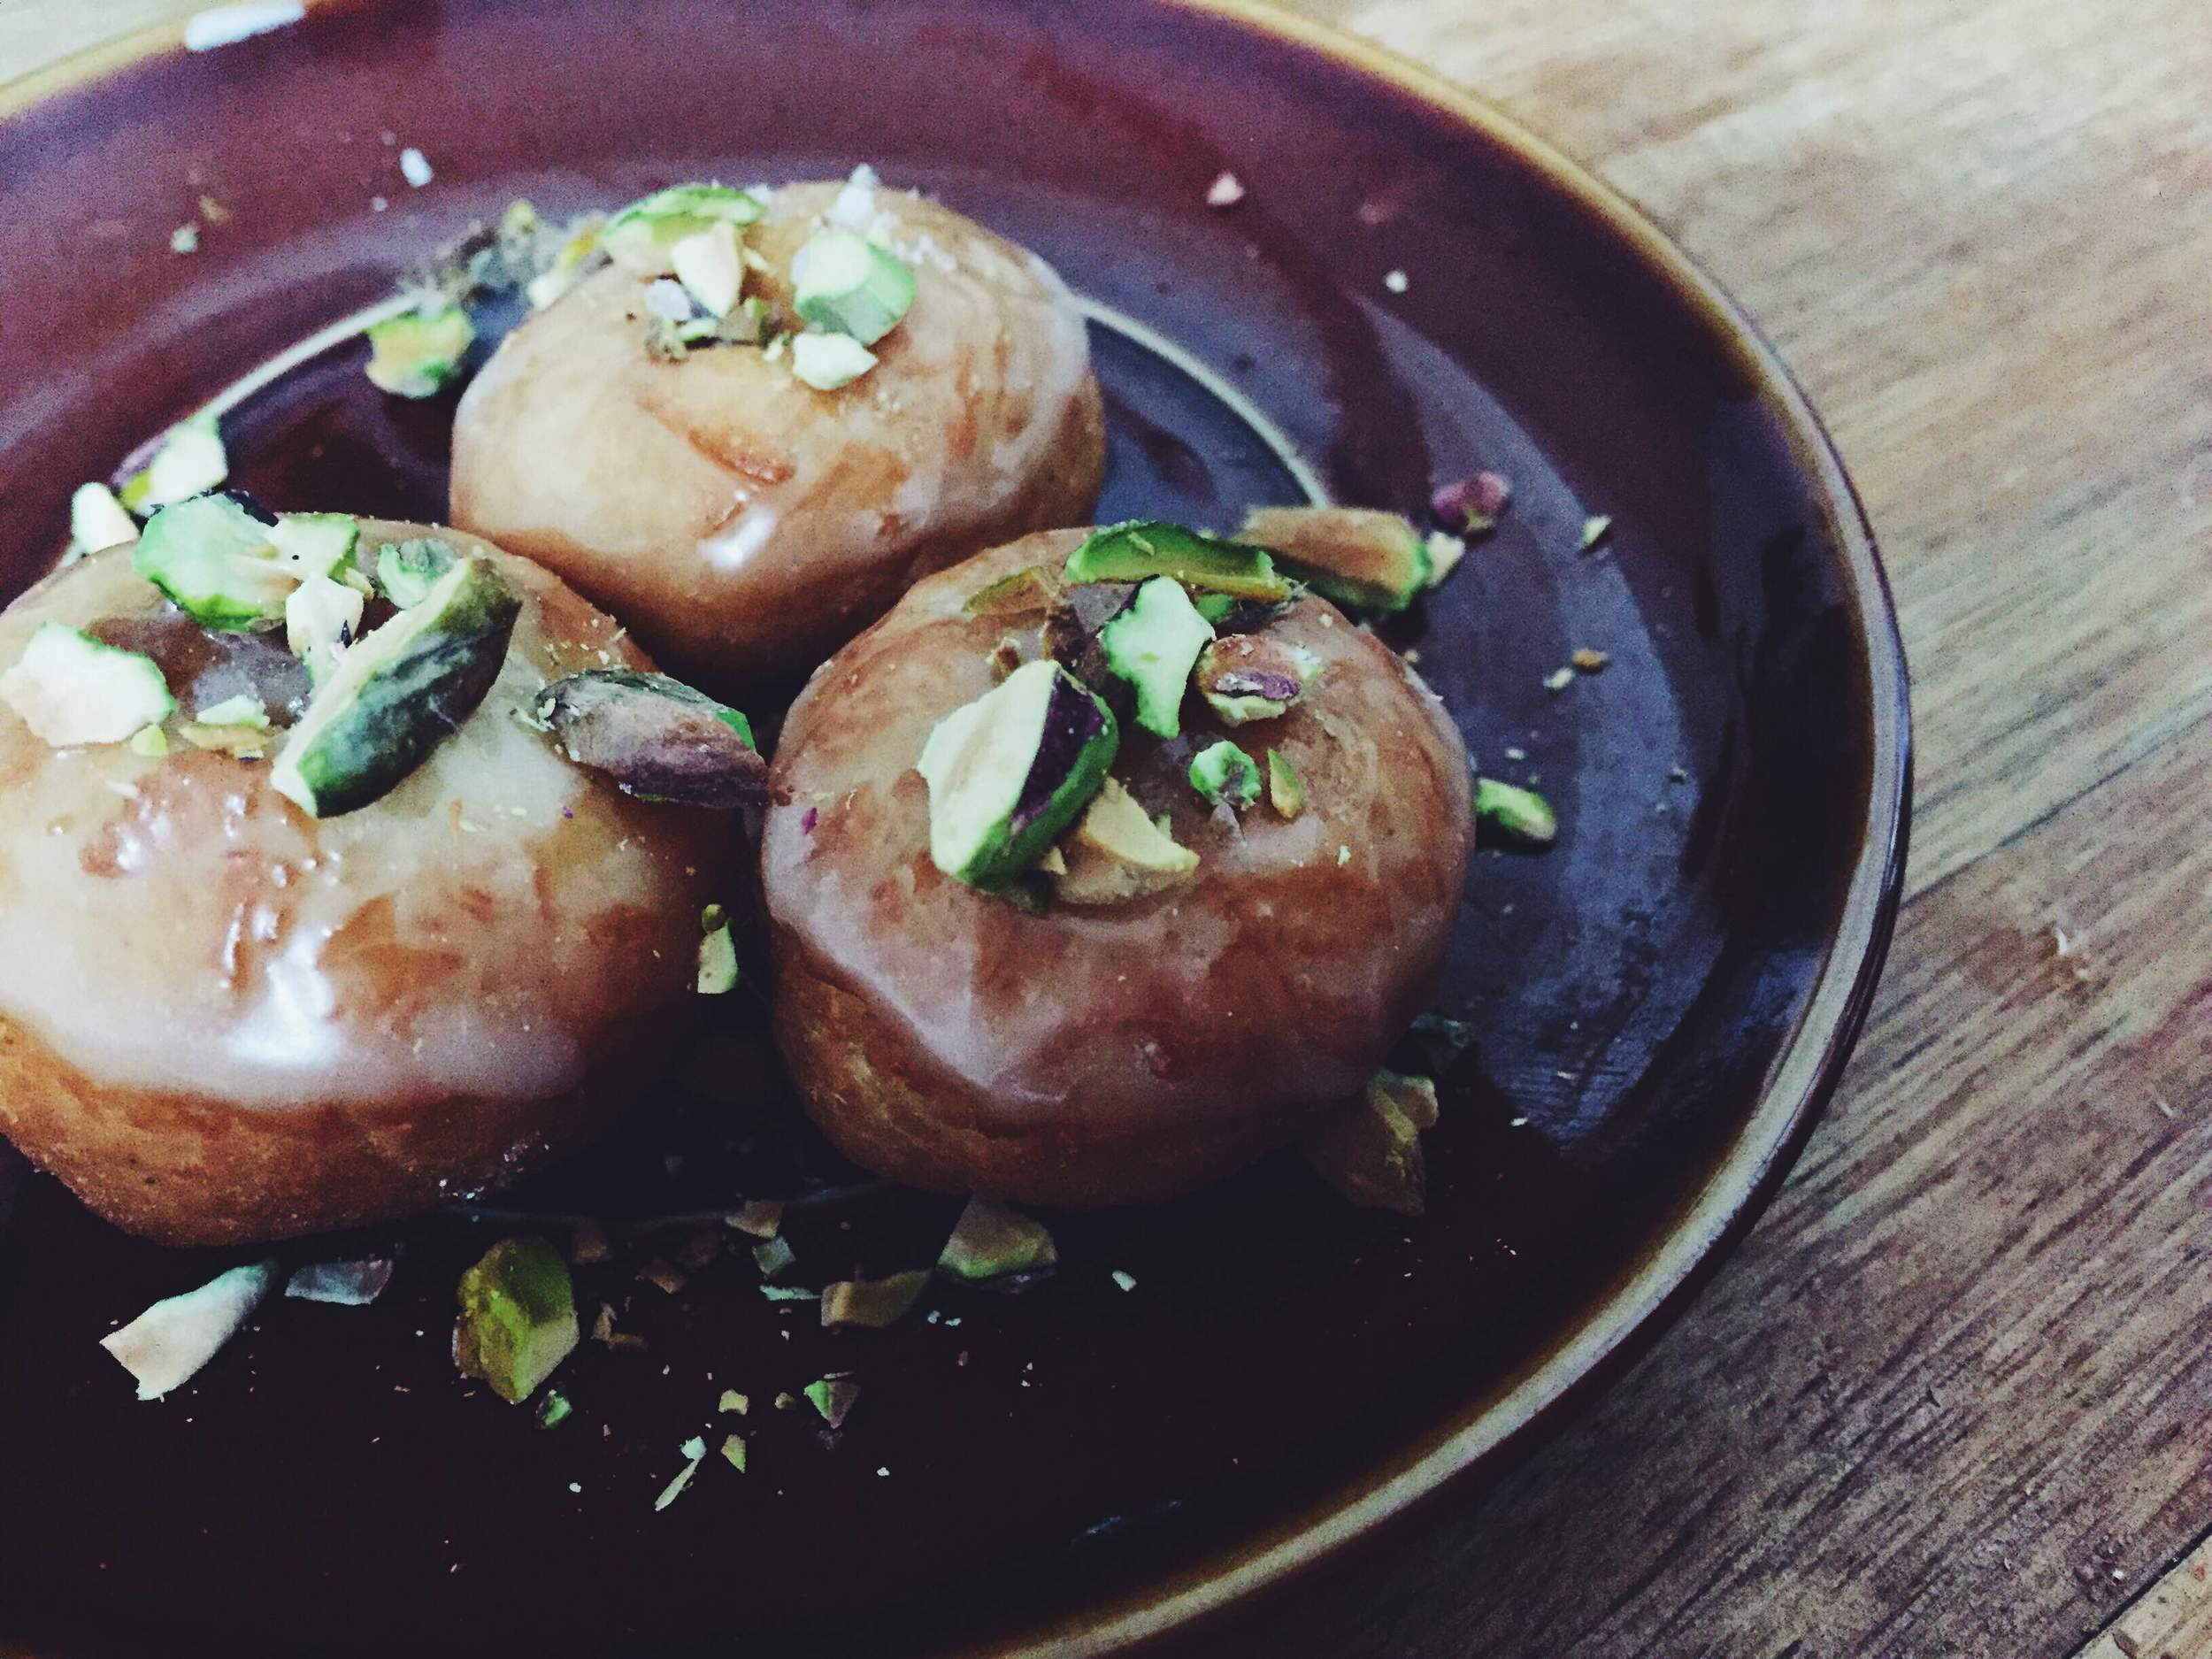 vegan chai infused donuts